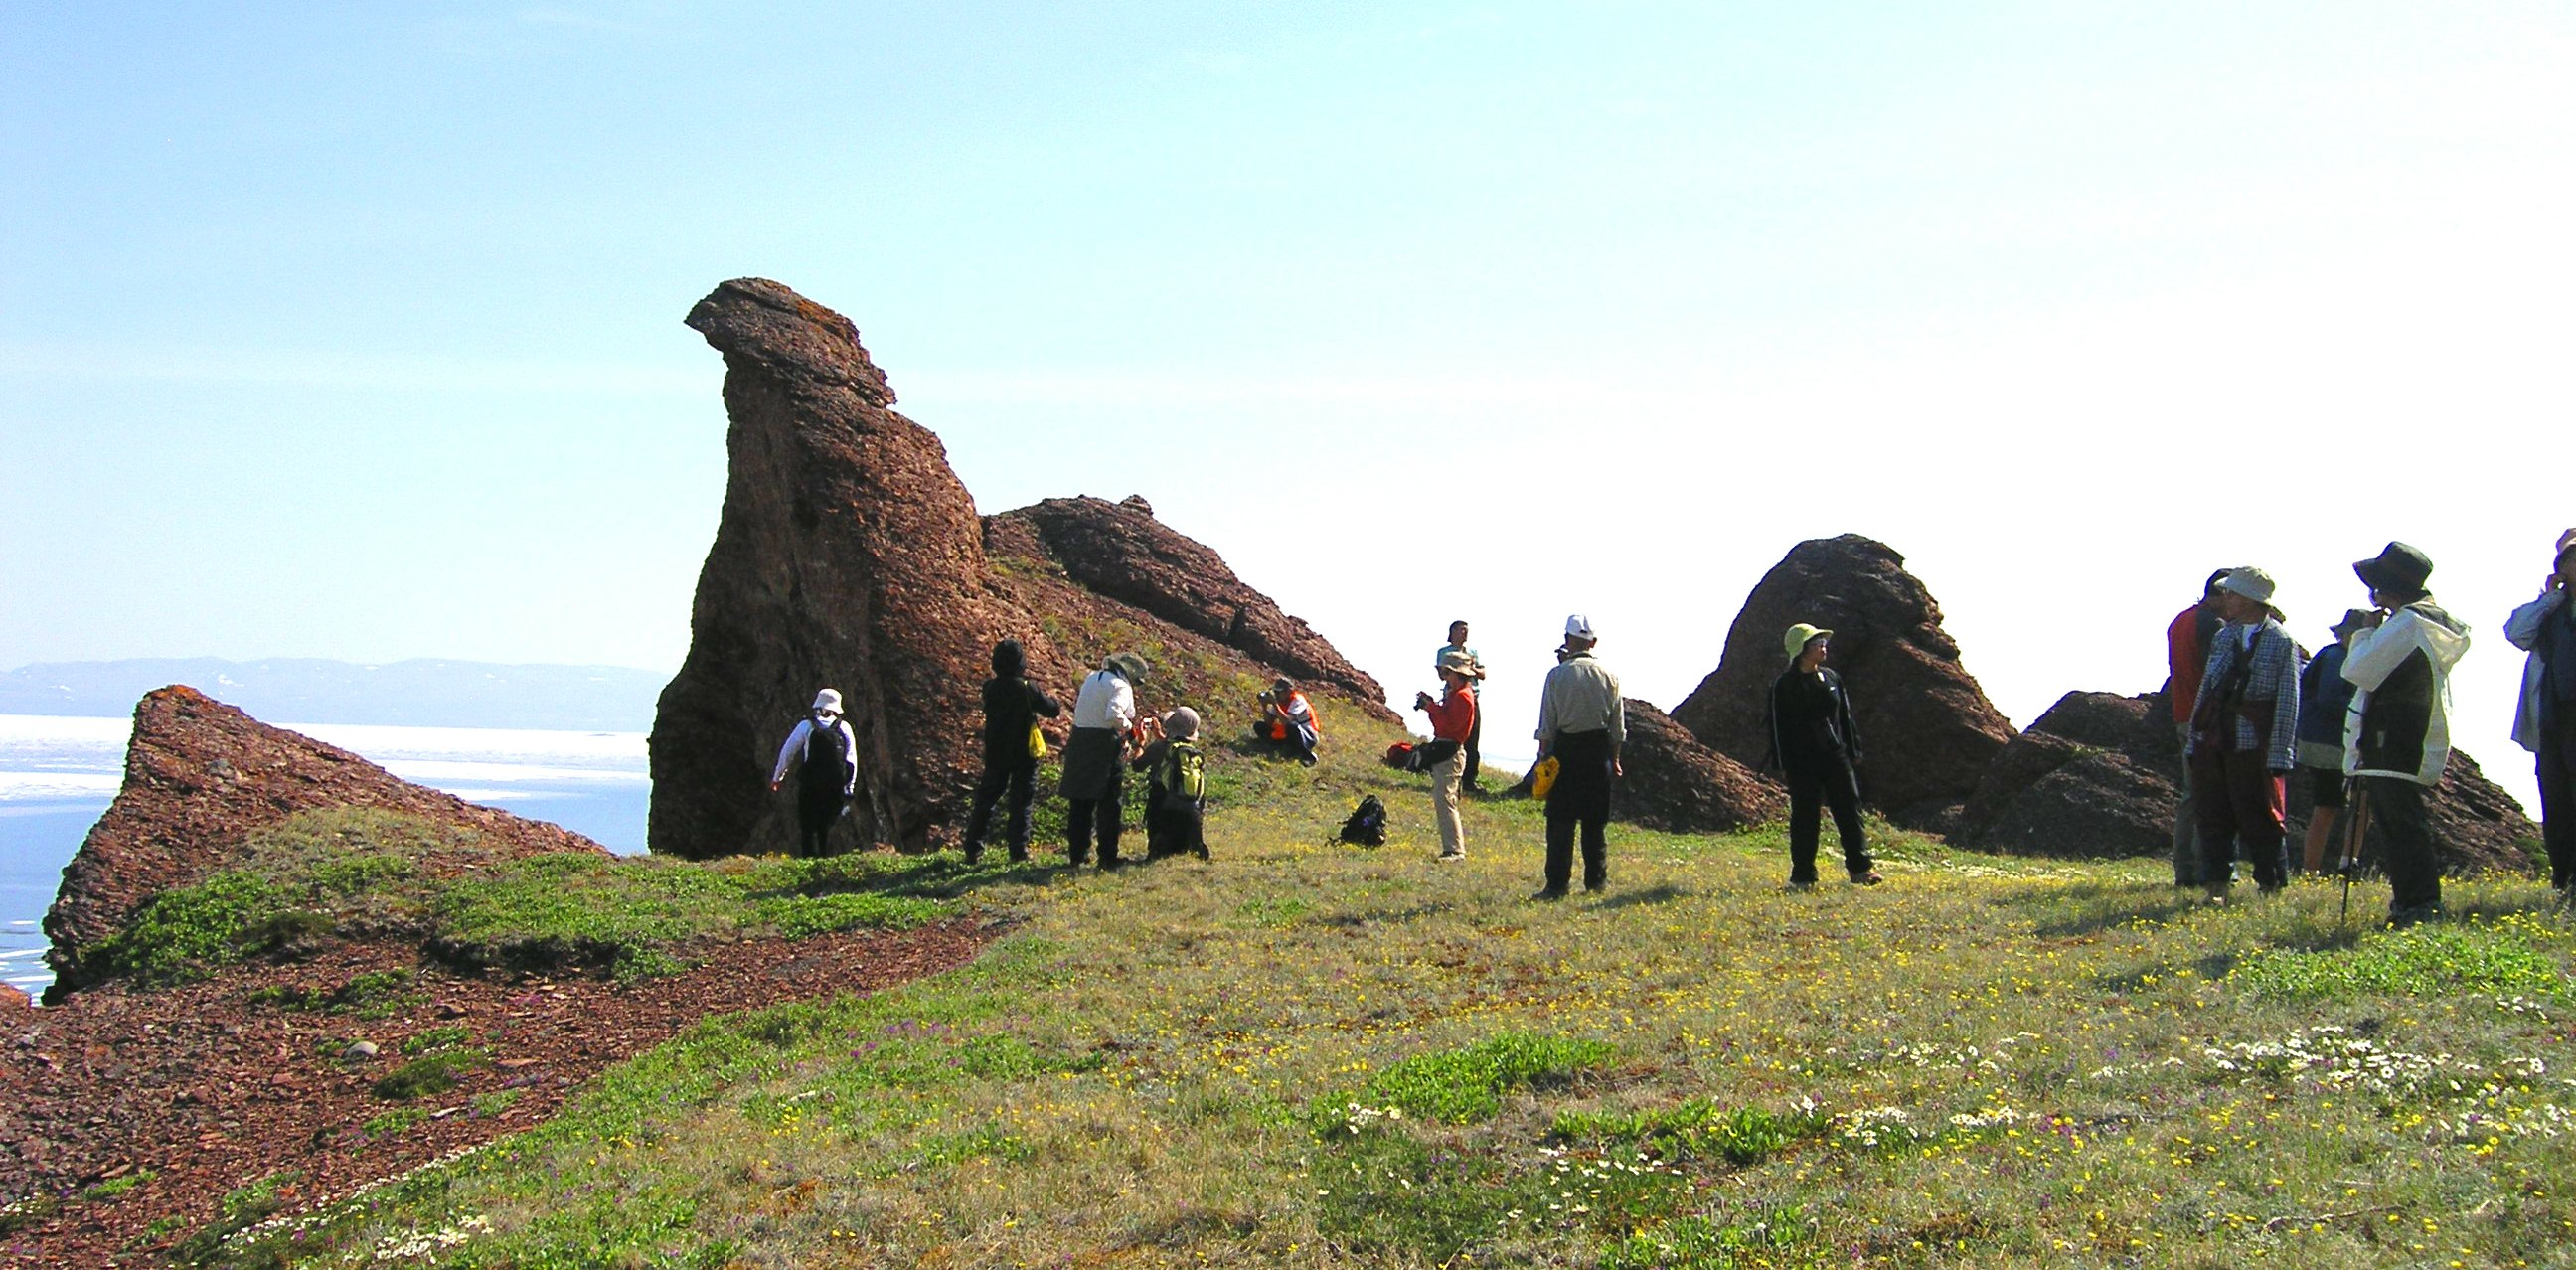 Group at Sandstone heads